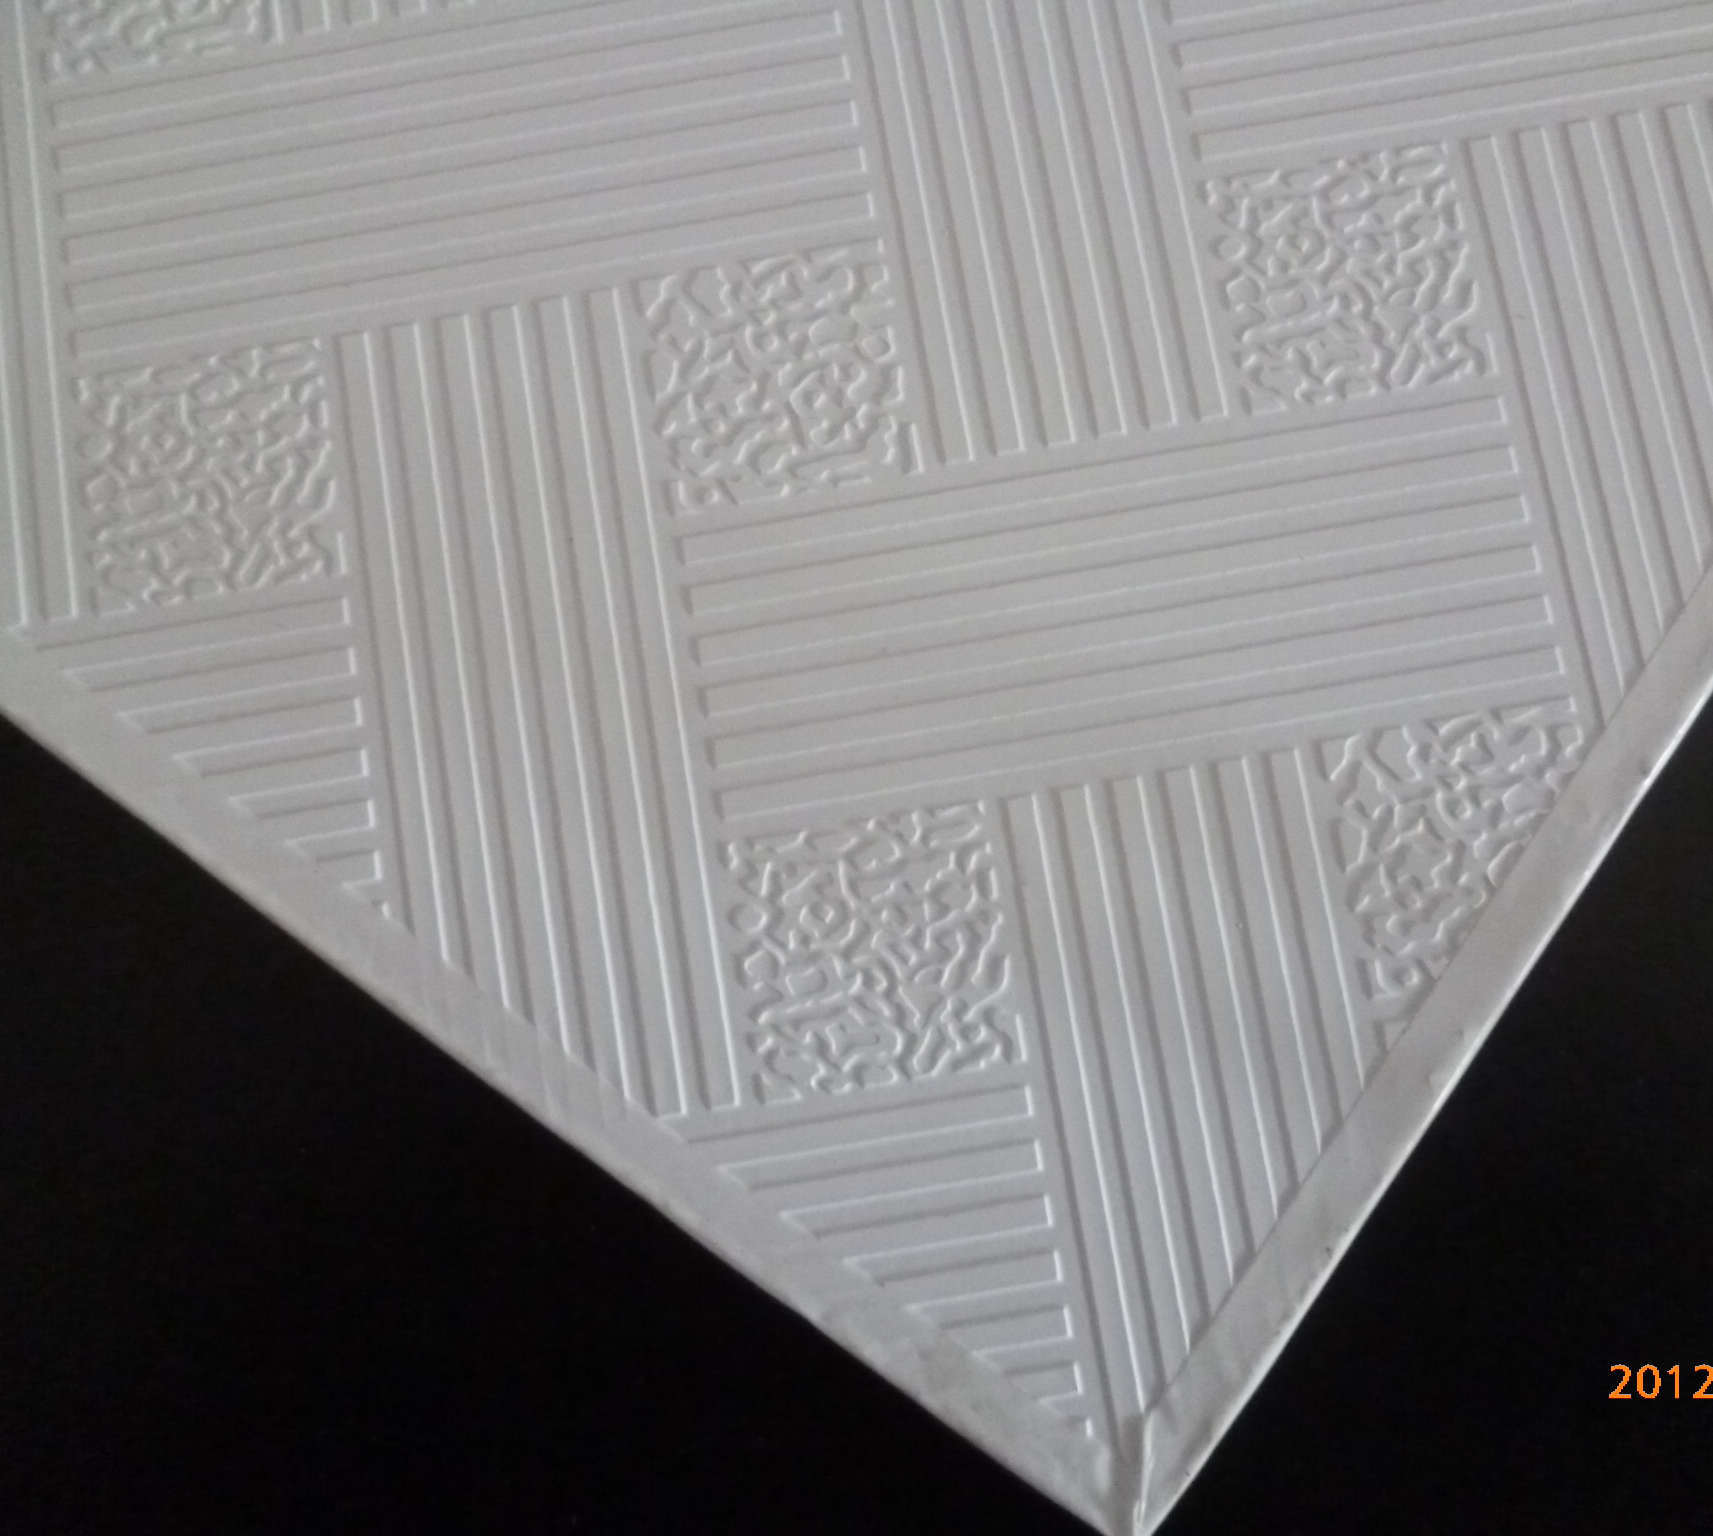 China pvc coated gypsum ceiling tile china pvc gypsum board pvc china pvc coated gypsum ceiling tile china pvc gypsum board pvc laminated gypsum board doublecrazyfo Gallery